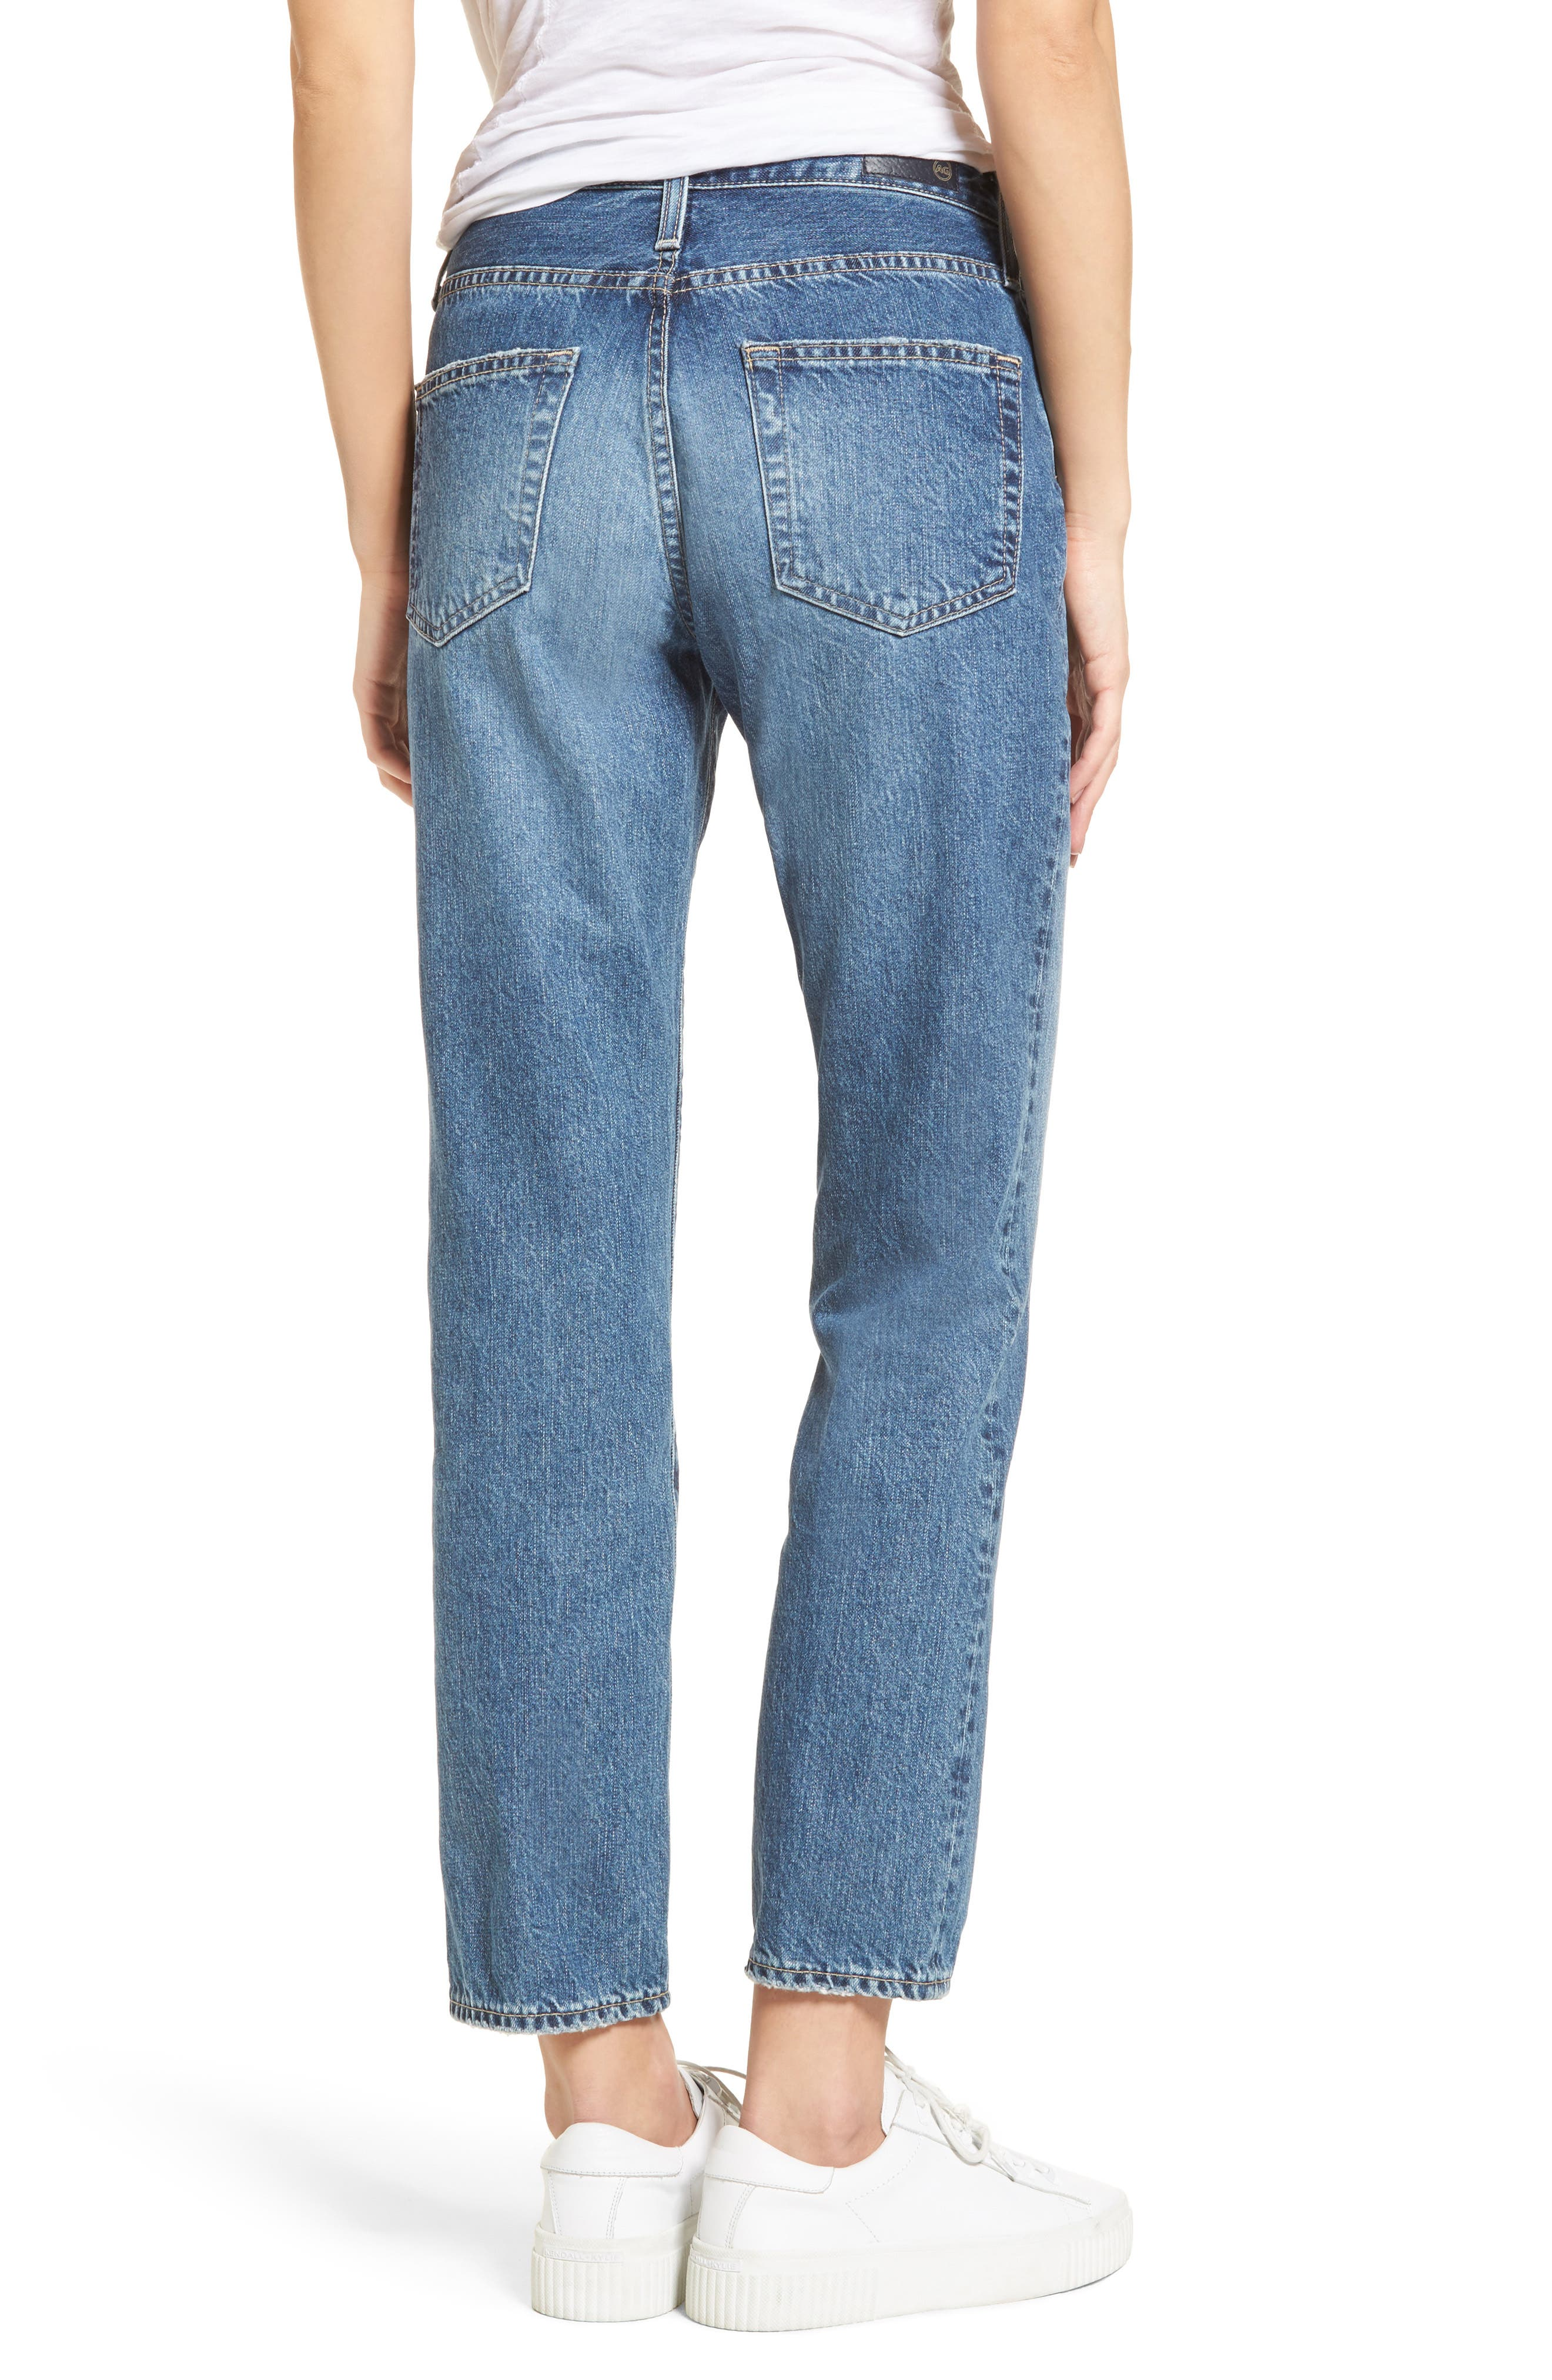 Isabelle High Waist Straight Leg Crop Jeans,                             Alternate thumbnail 2, color,                             436